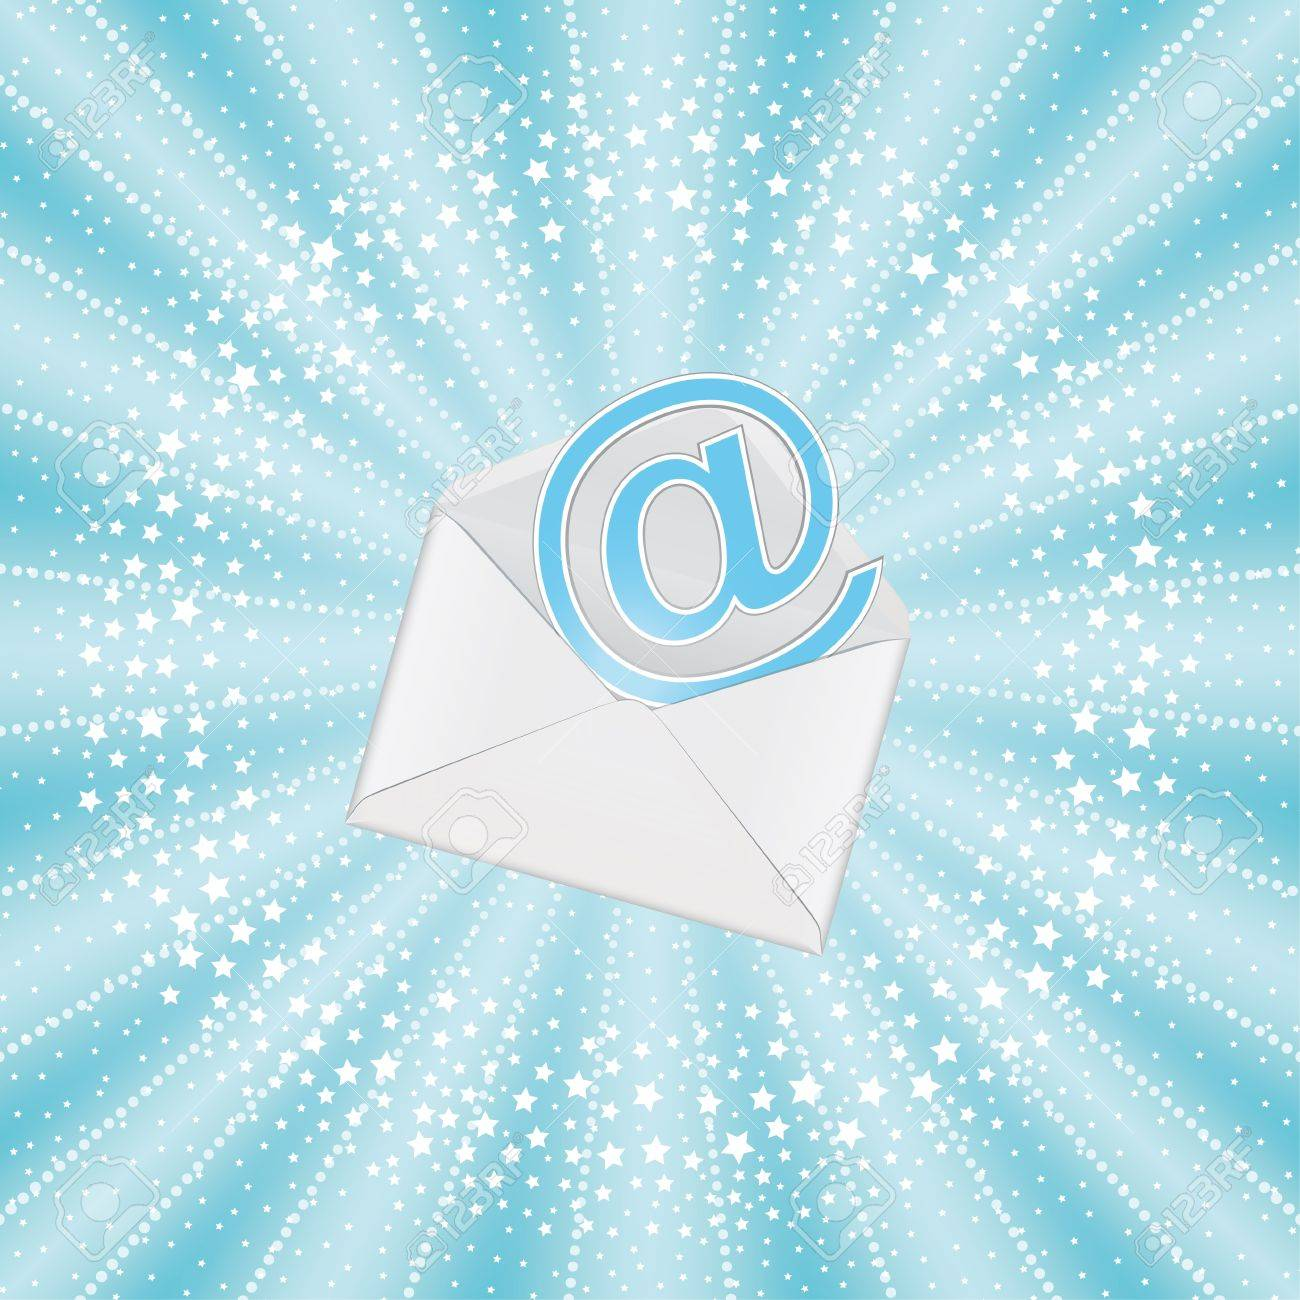 Email background image - Envelope With Email On Blue Sunbeam Background Stock Vector 13241623